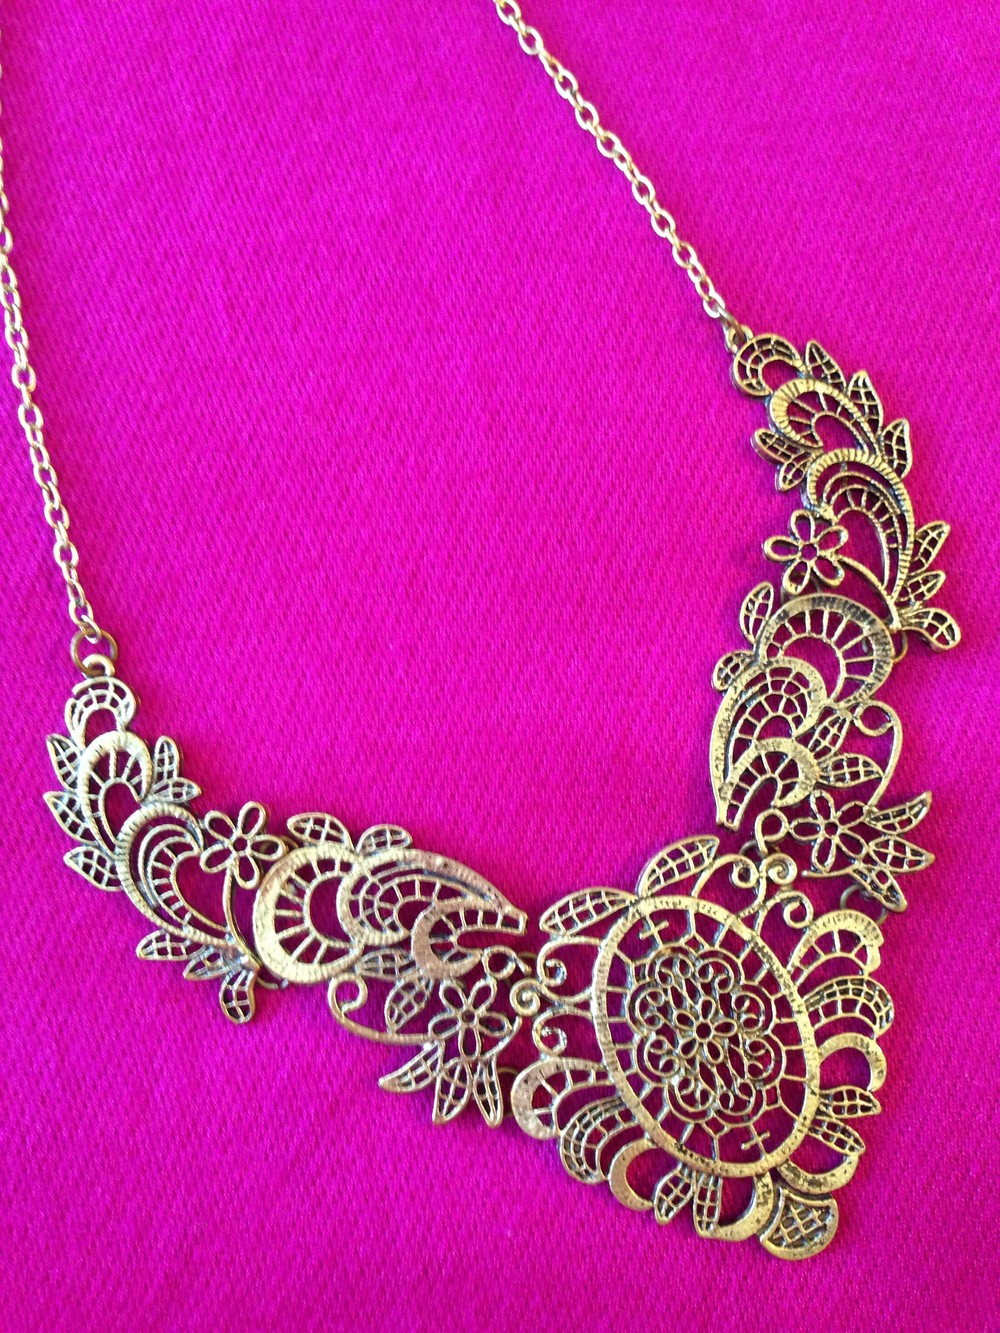 Gunmetal lace necklace by mir